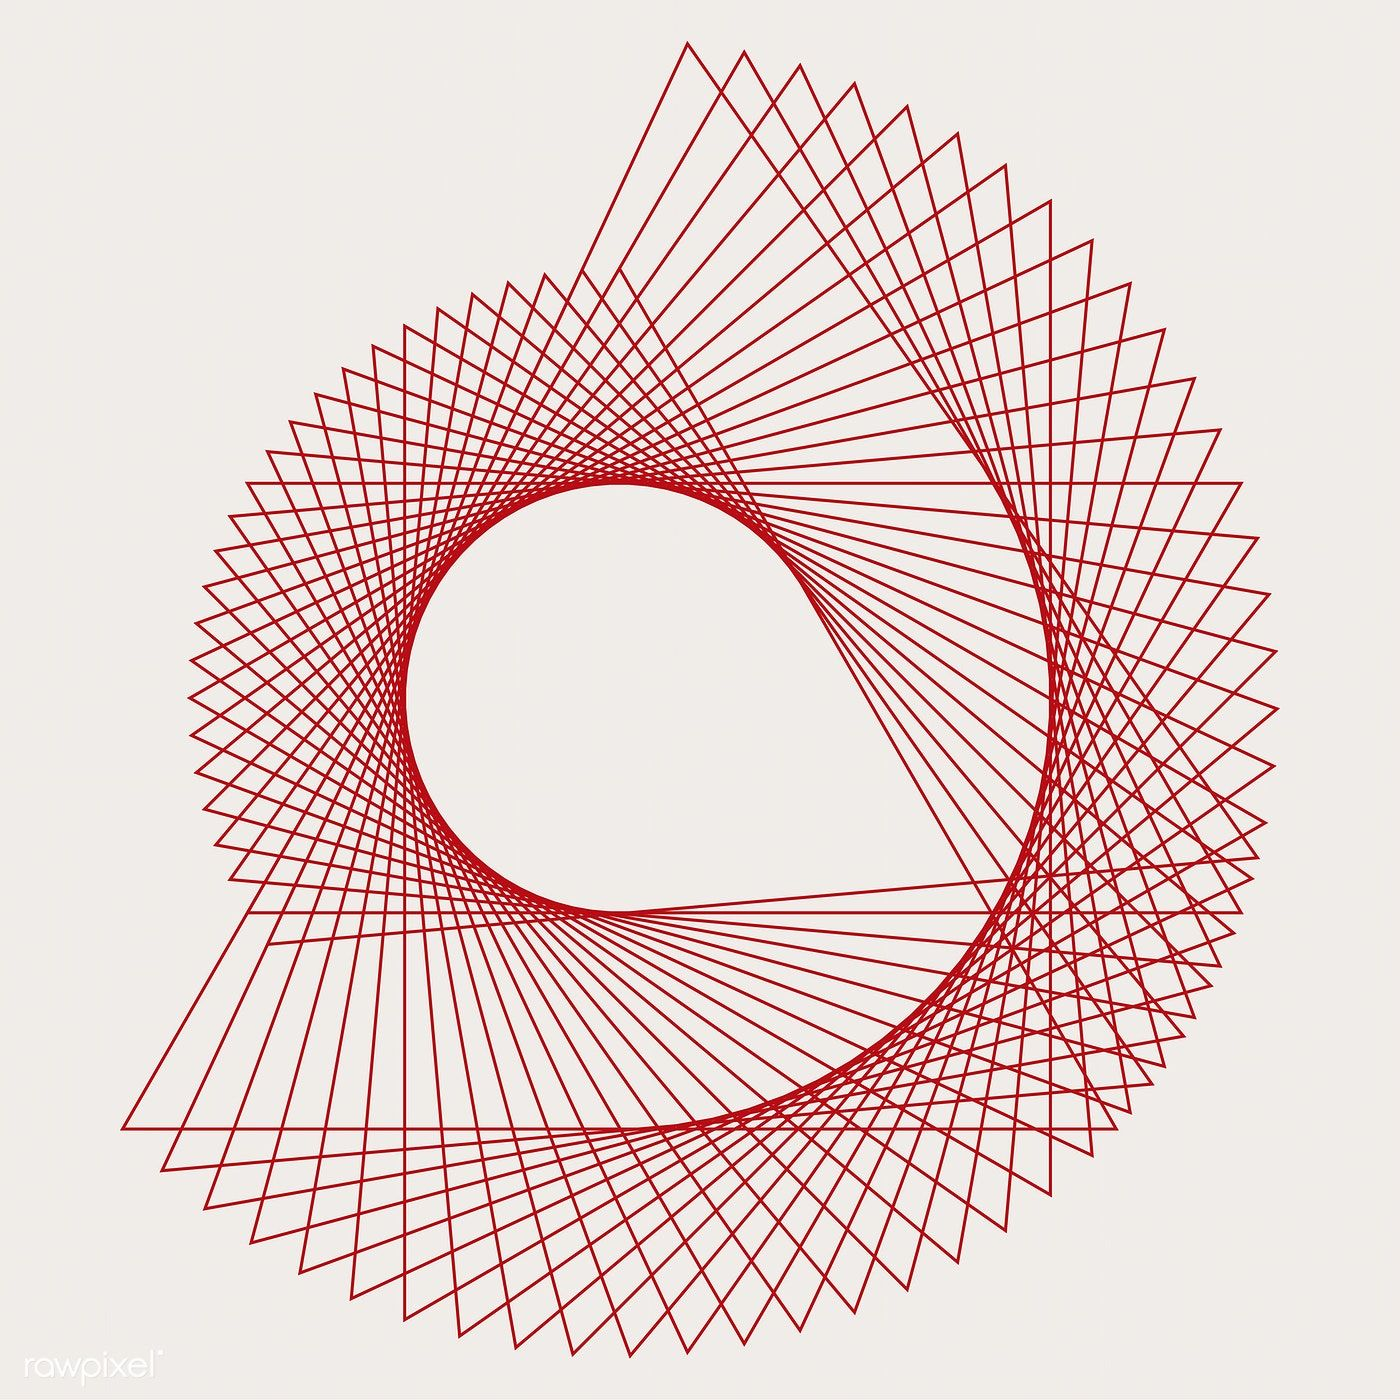 Abstract circular geometric element vector free image by